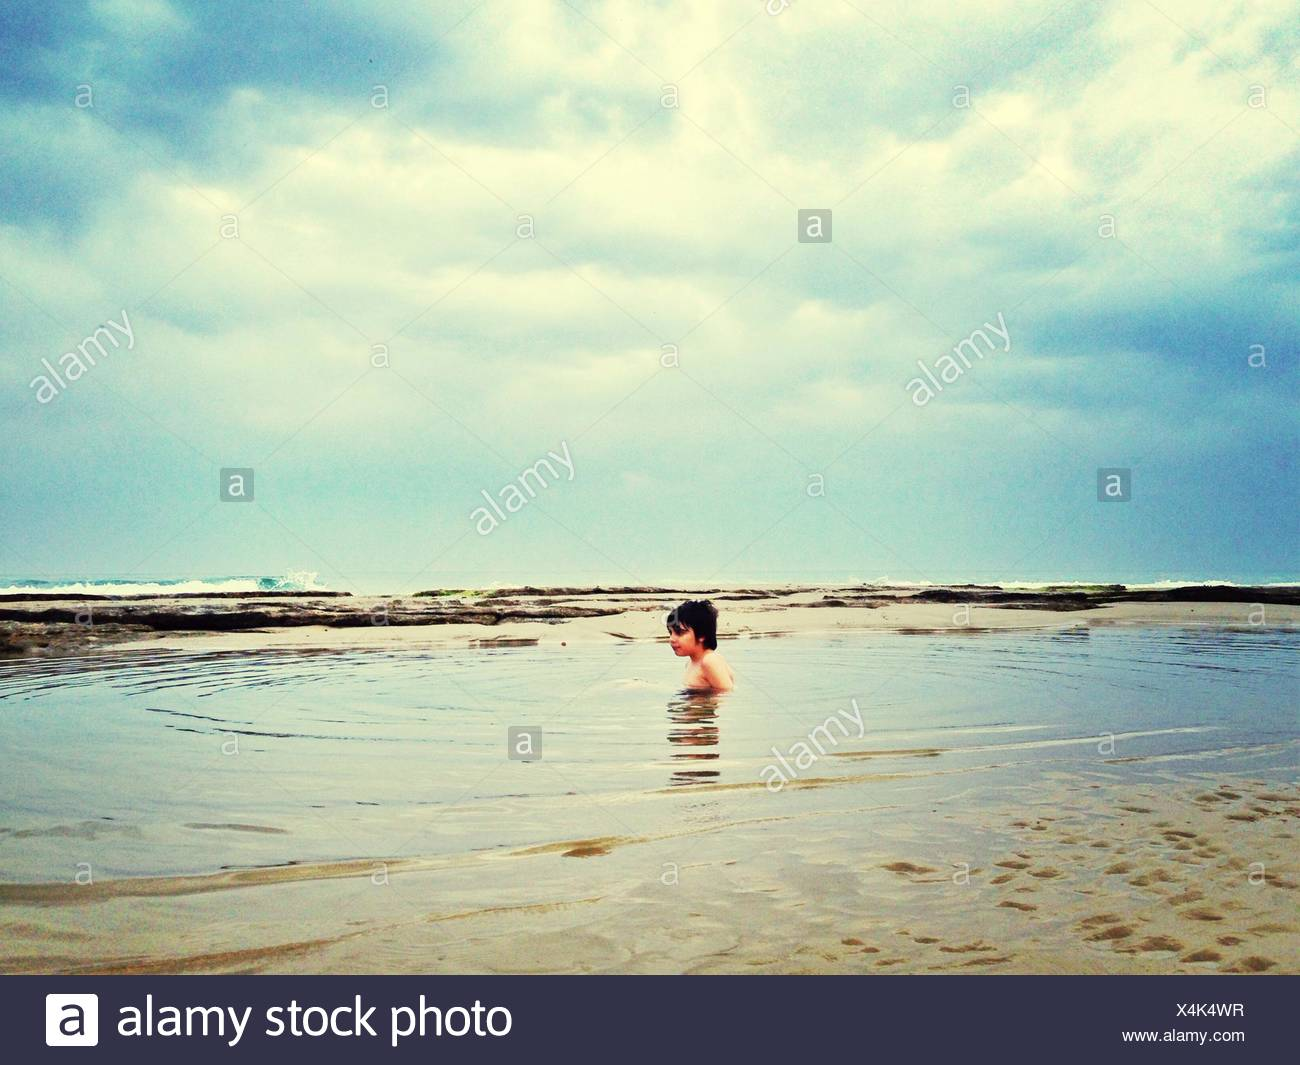 Shirtless Boy swimming in Sea Banque D'Images